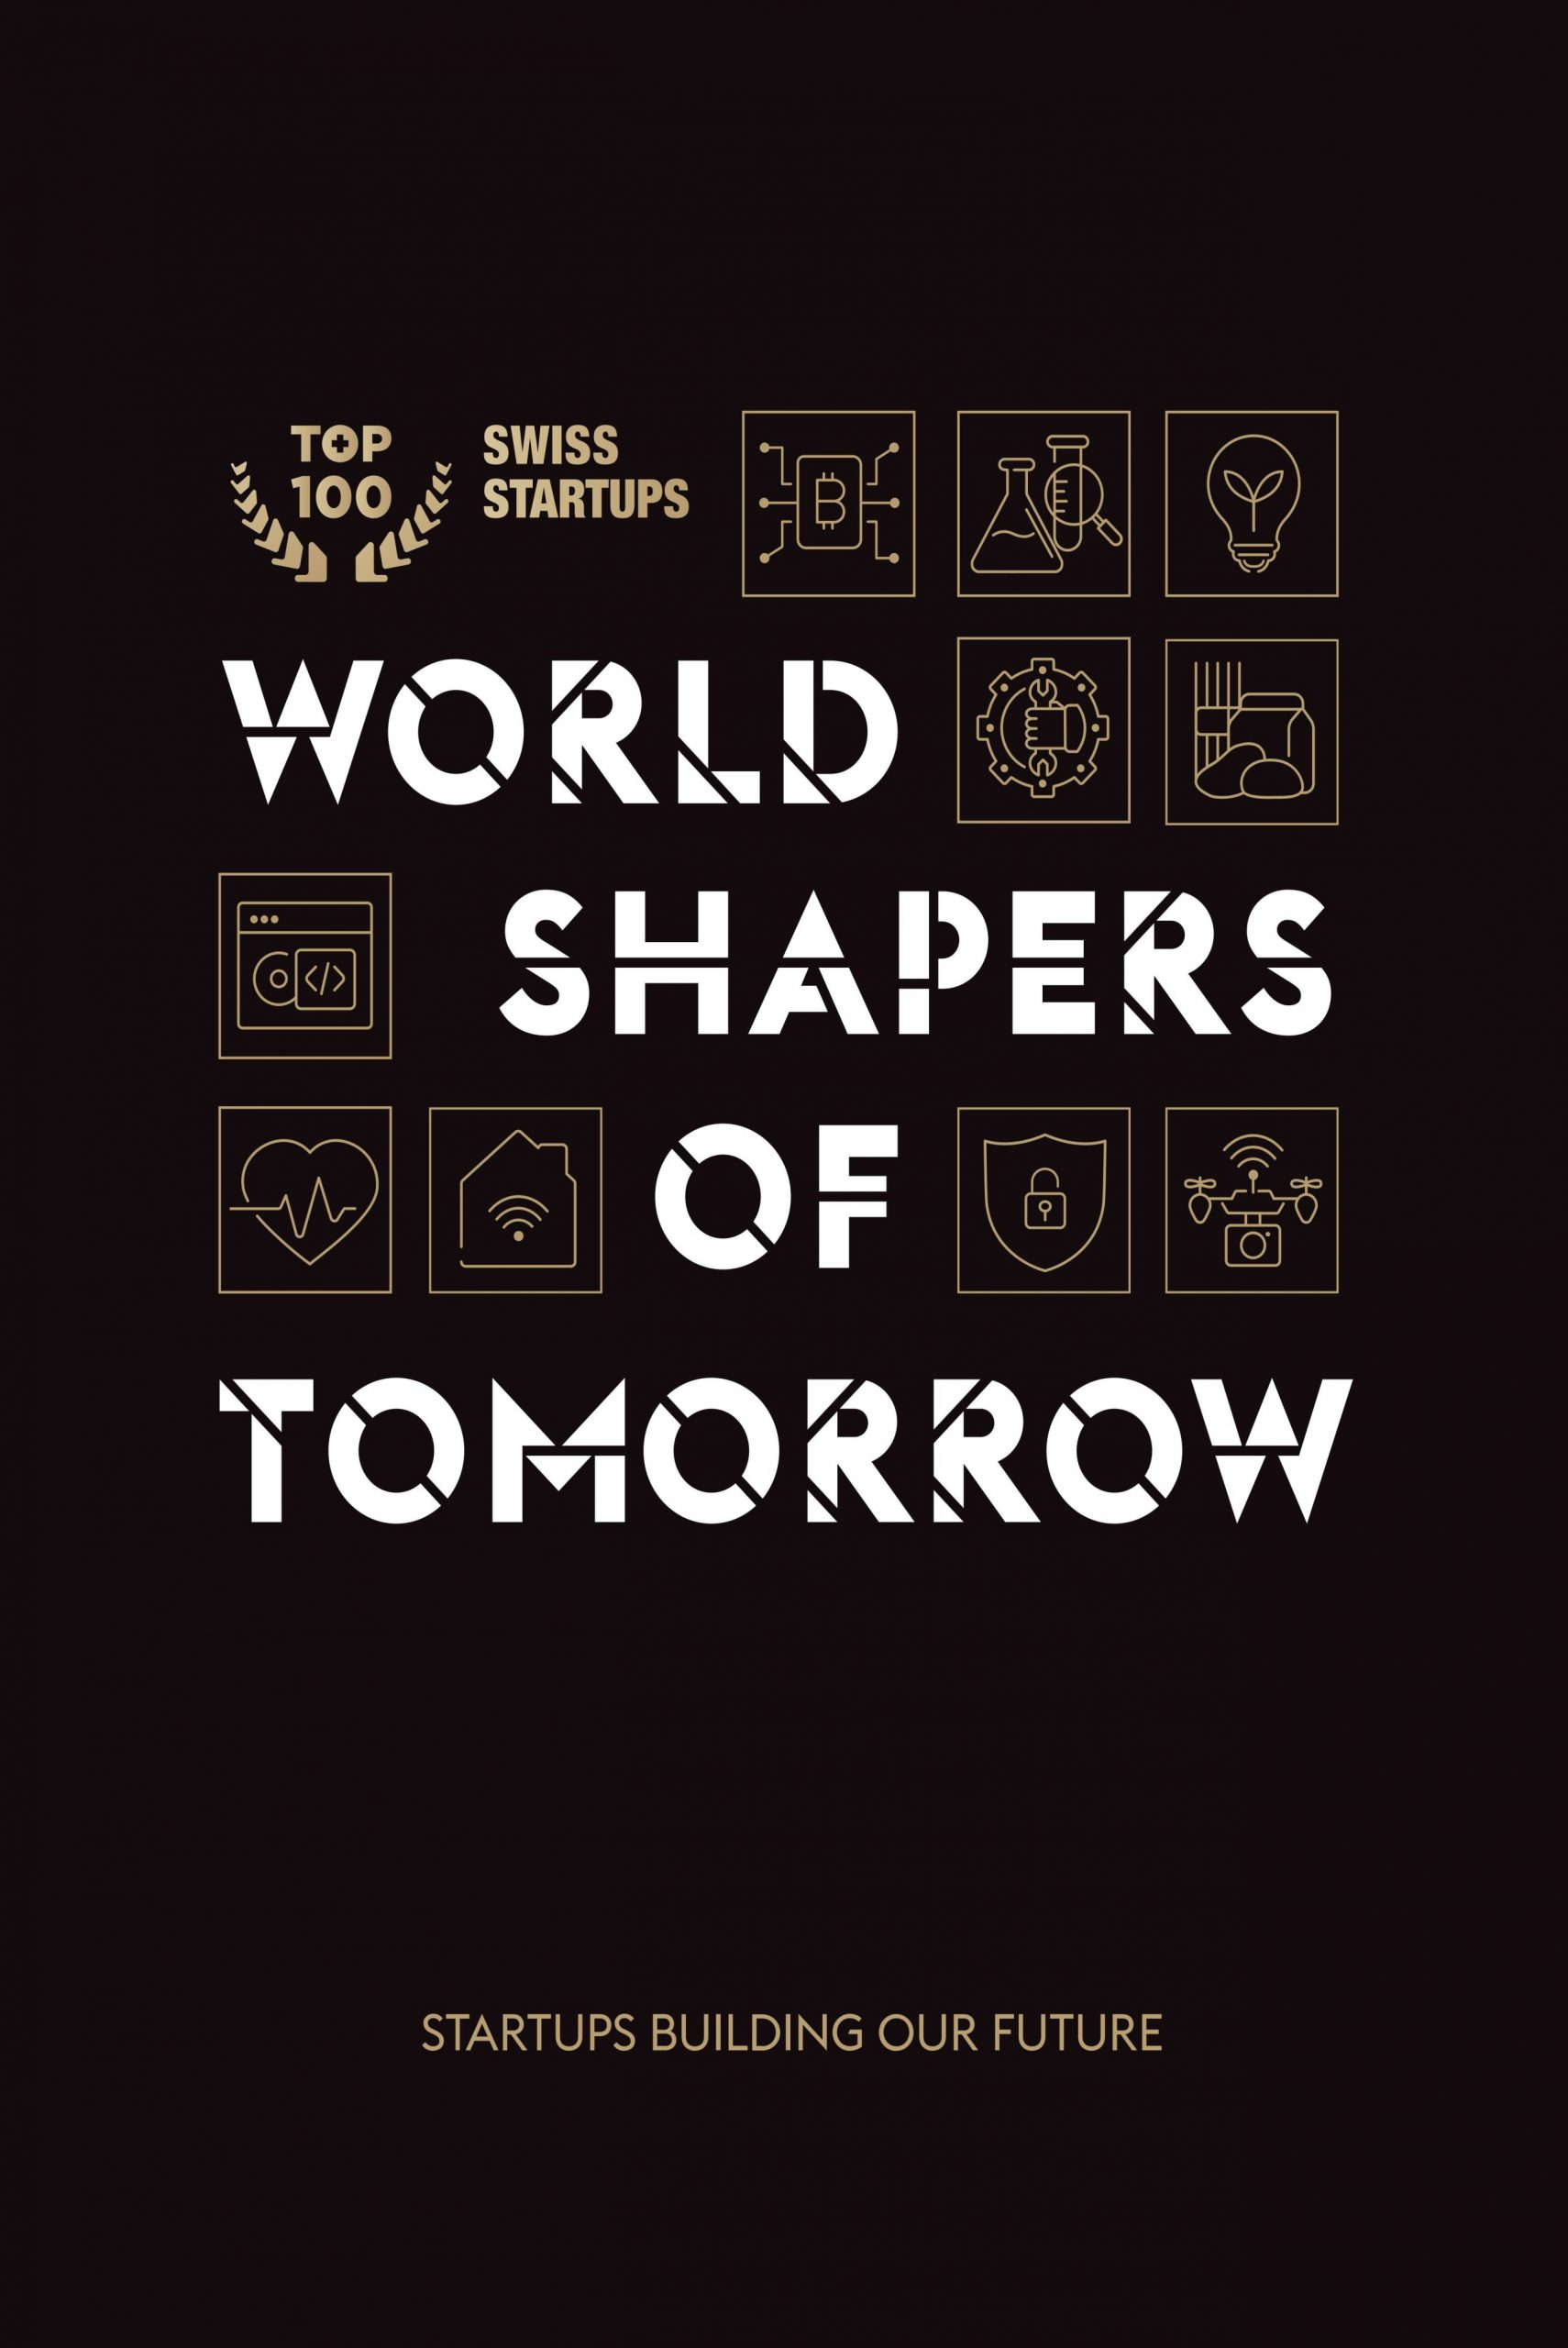 World shapers of tomorrow – Non-fiction book on startups that build the future of Switzerland 1